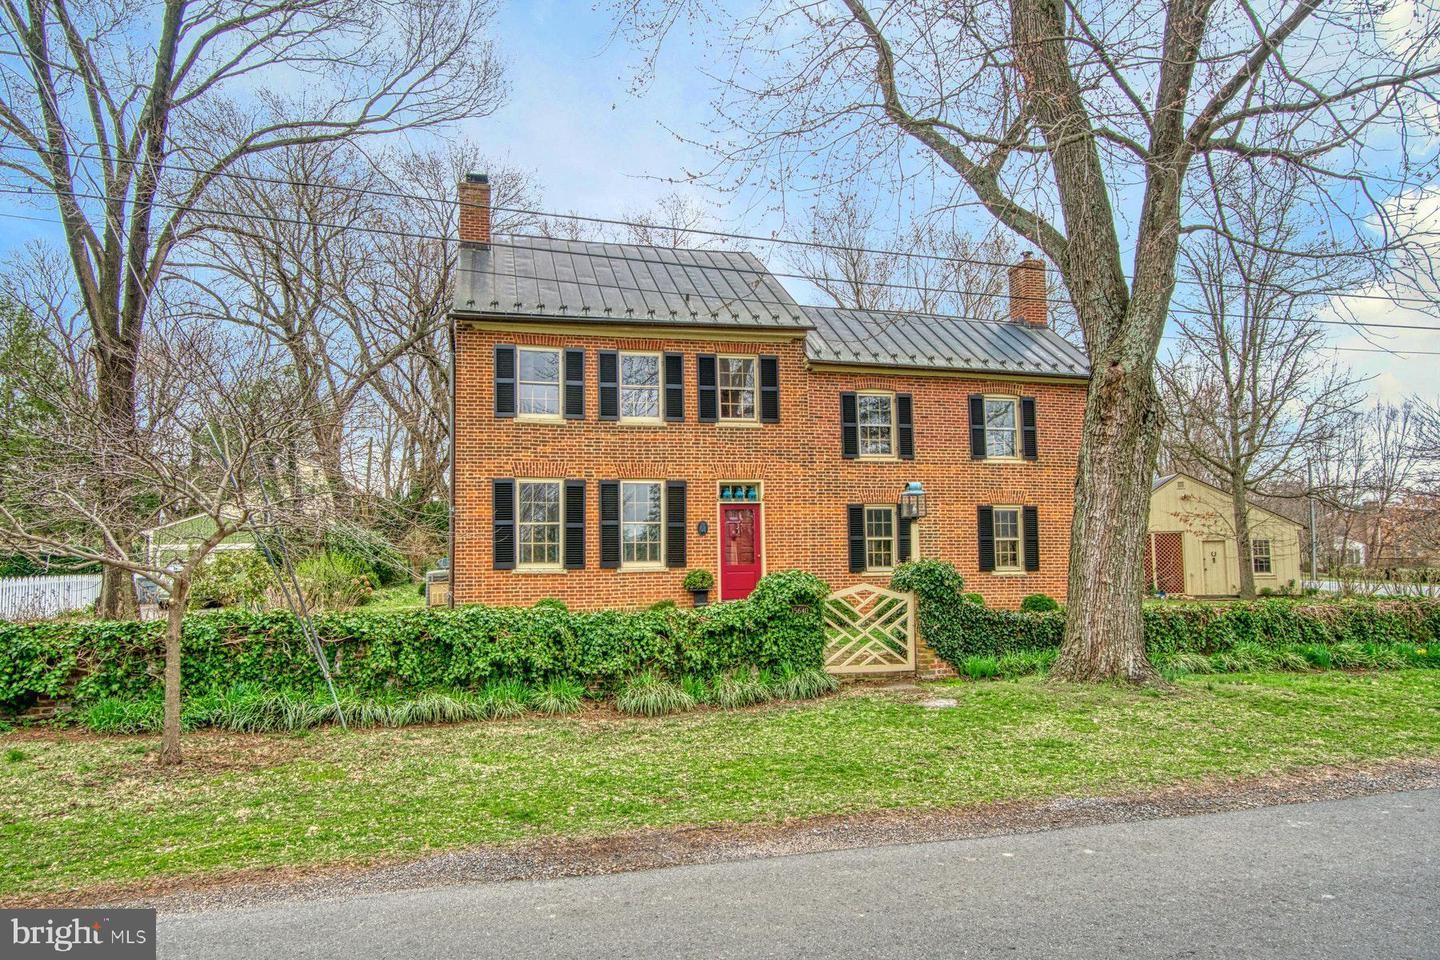 15640 SECOND ST, Waterford, VA 20197 - #: VALO405004